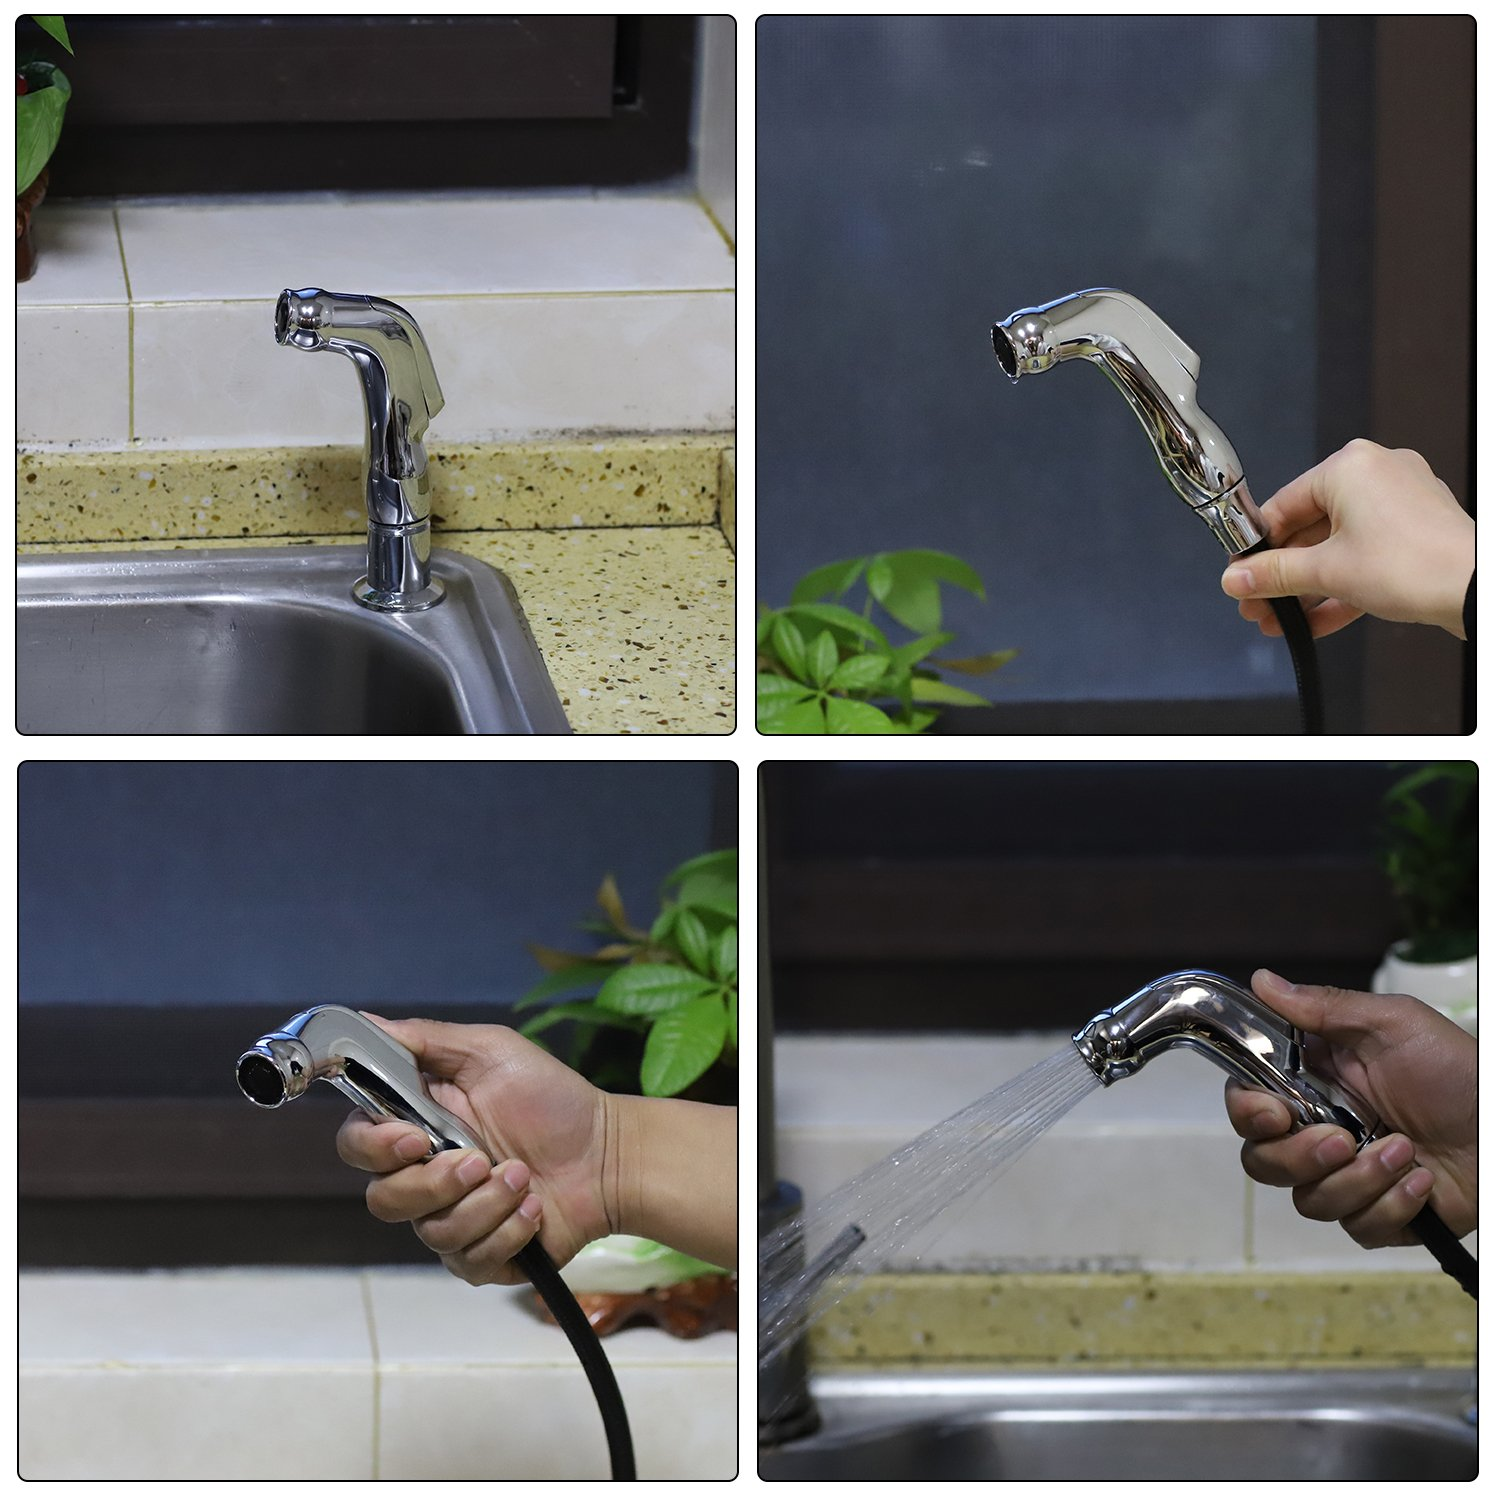 Kitchen Faucet Side Spray with Hose Series Spray Head and Hose Assembly(Polished Sprayer Head) by CLEESINK